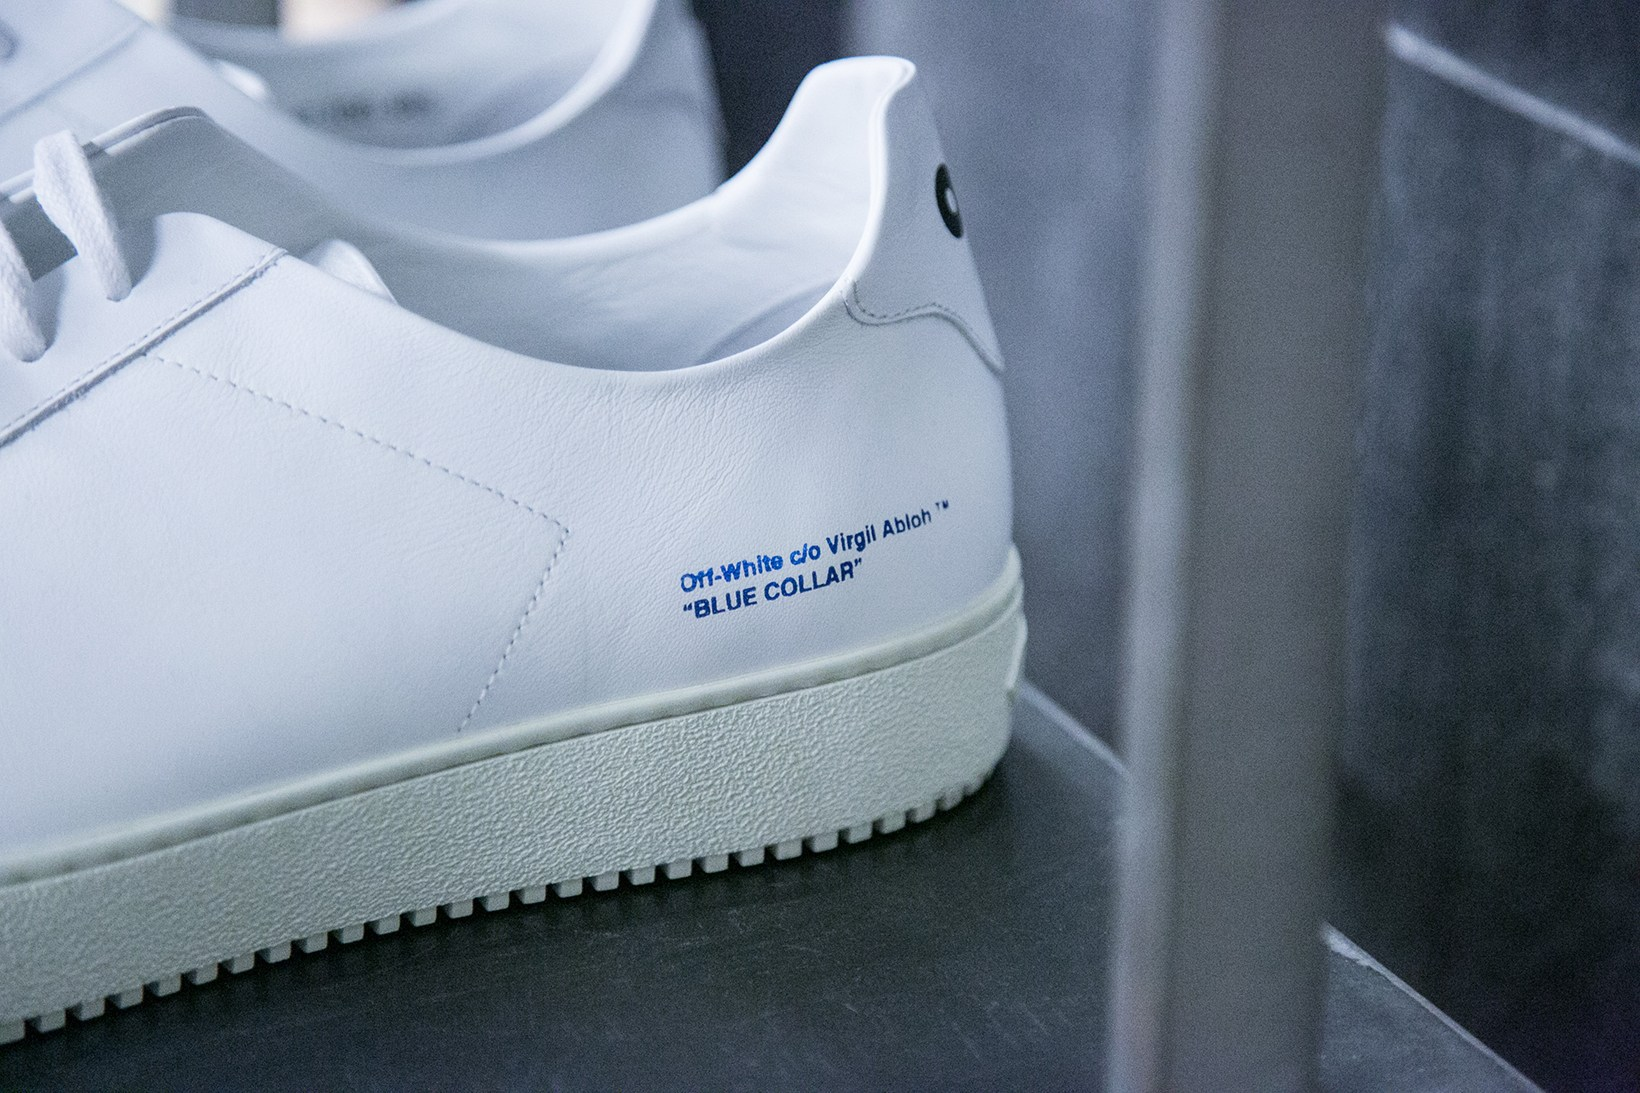 off-white-pop-up-maxfield-photographs-pause13